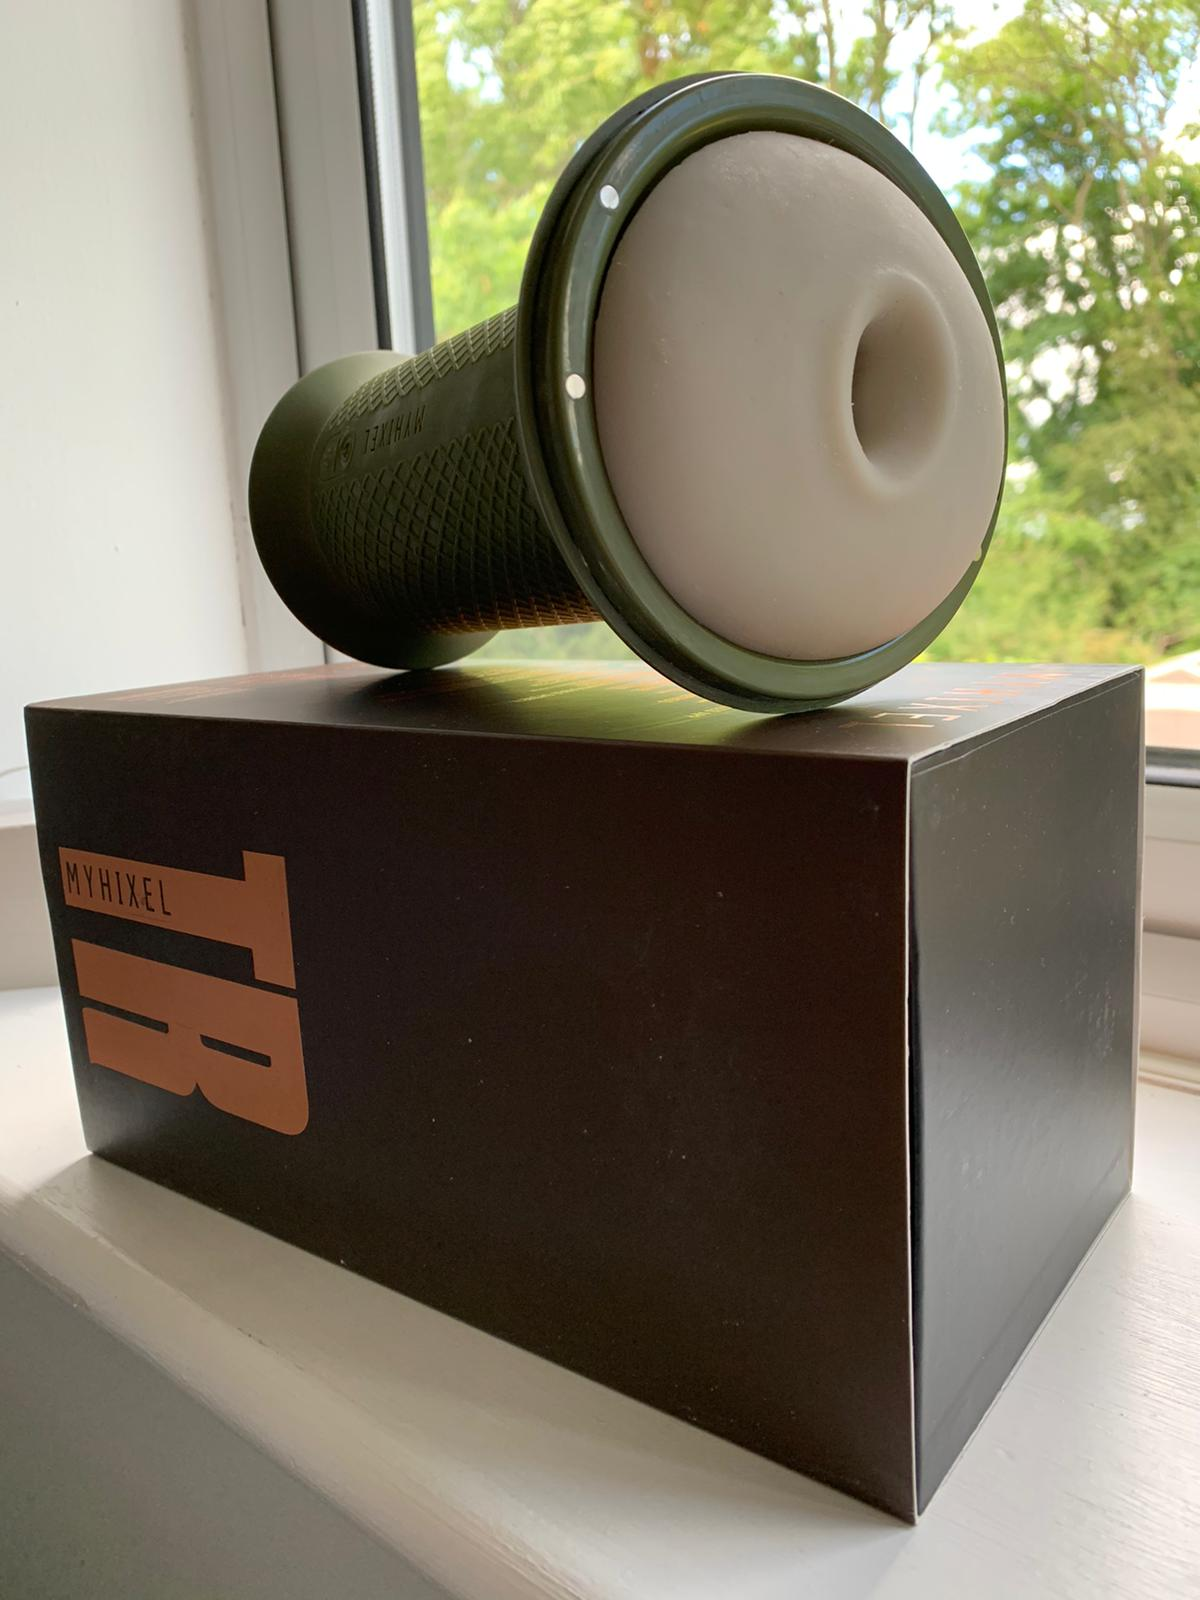 MyHixel device resting on its packaging, on the windowsill